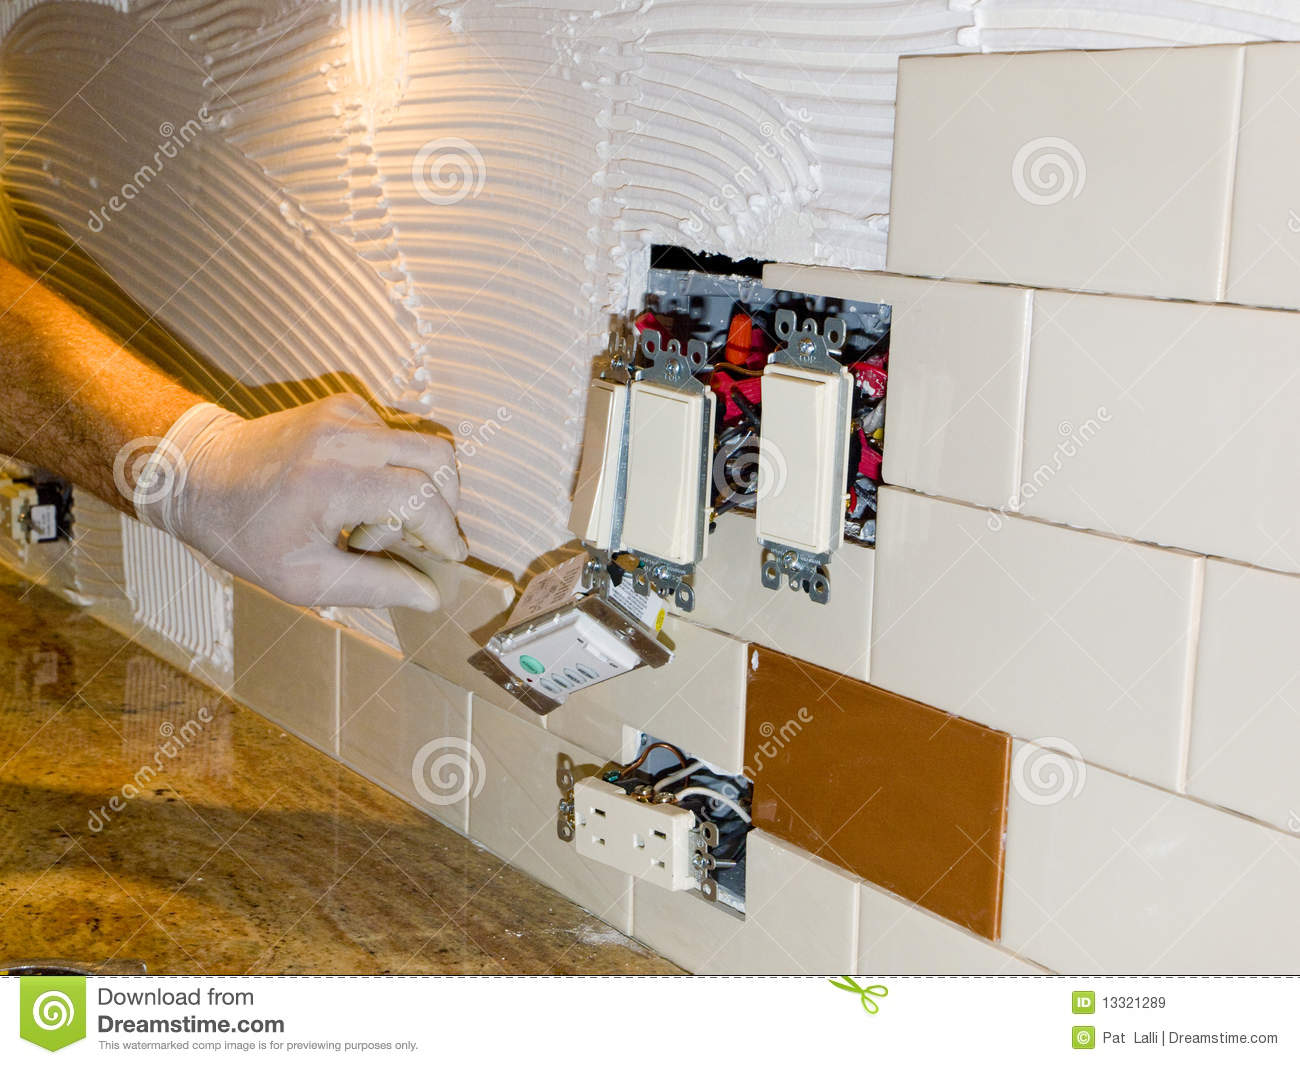 ceramic tile installation on kitchen backsplash 10 royalty free - Install Ceramic Tile Backsplash